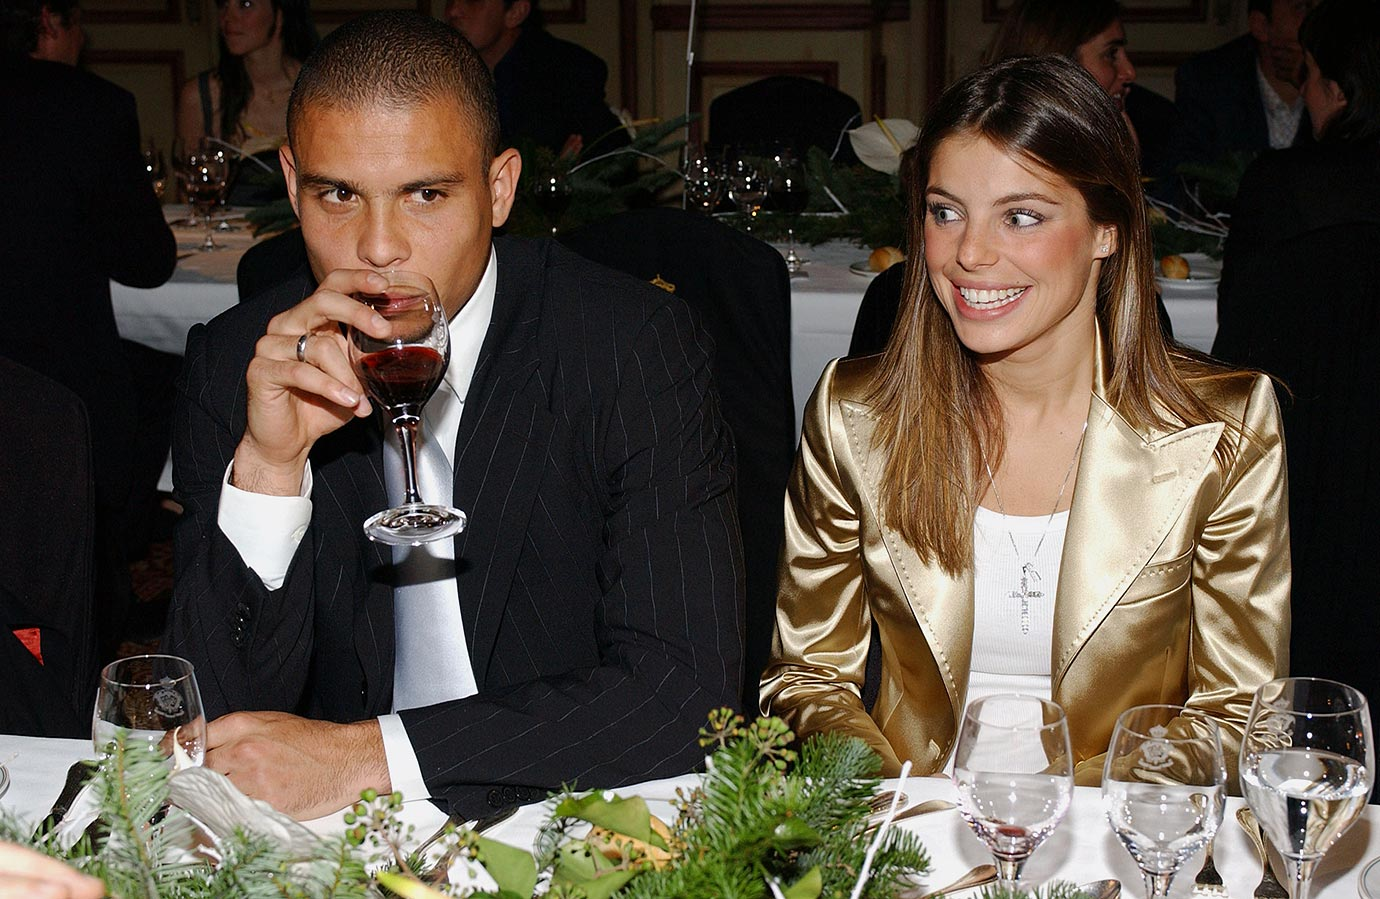 Ronaldo, donning a sleek pinstripe suit, attends the GQ Awards 2004 in Madrid with his then girlfriend Daniela Cicarelli.